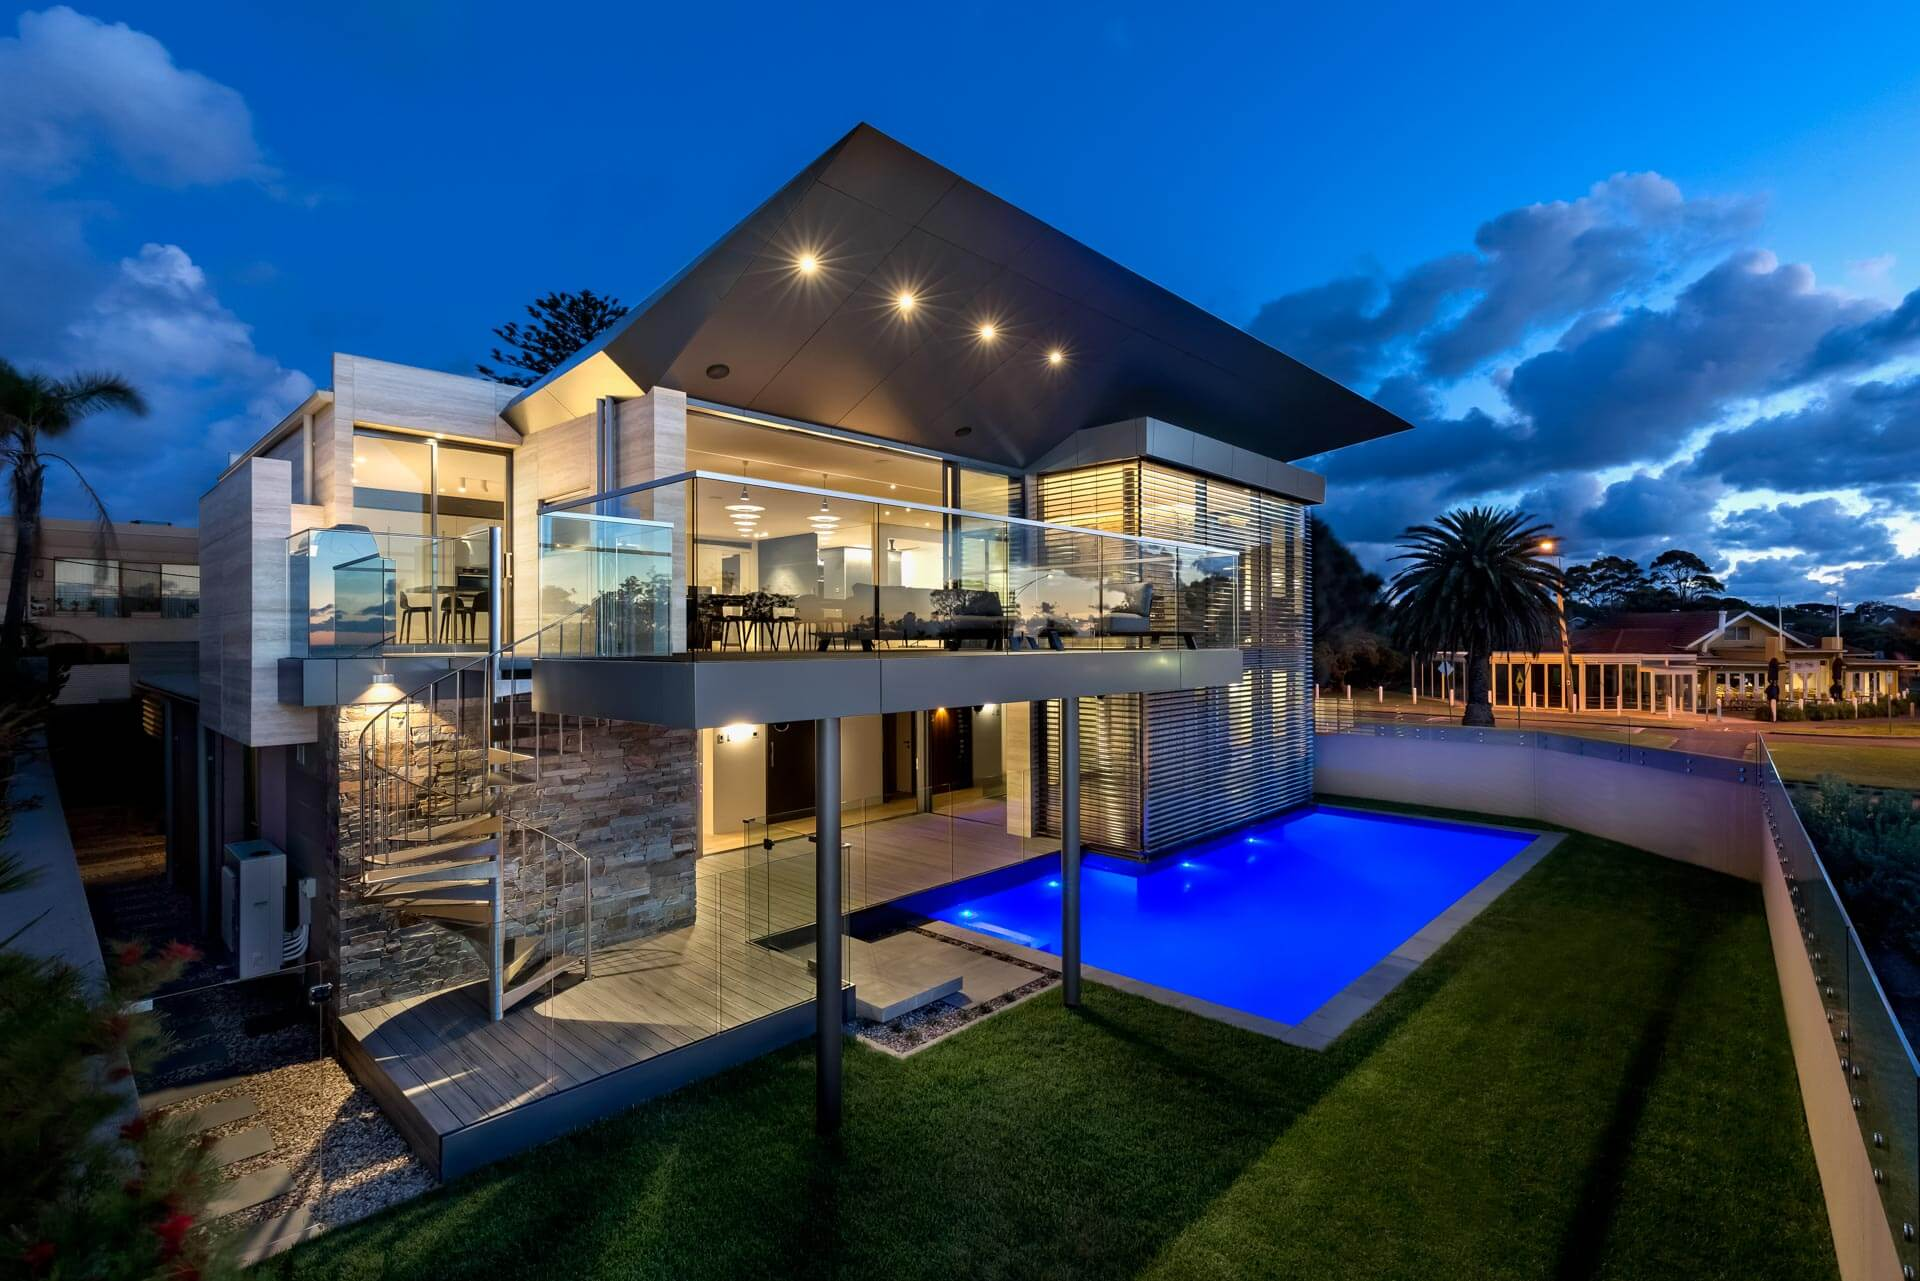 rtp-architectural-photography-tim-roberts-design-north-rd-project-dusk-external